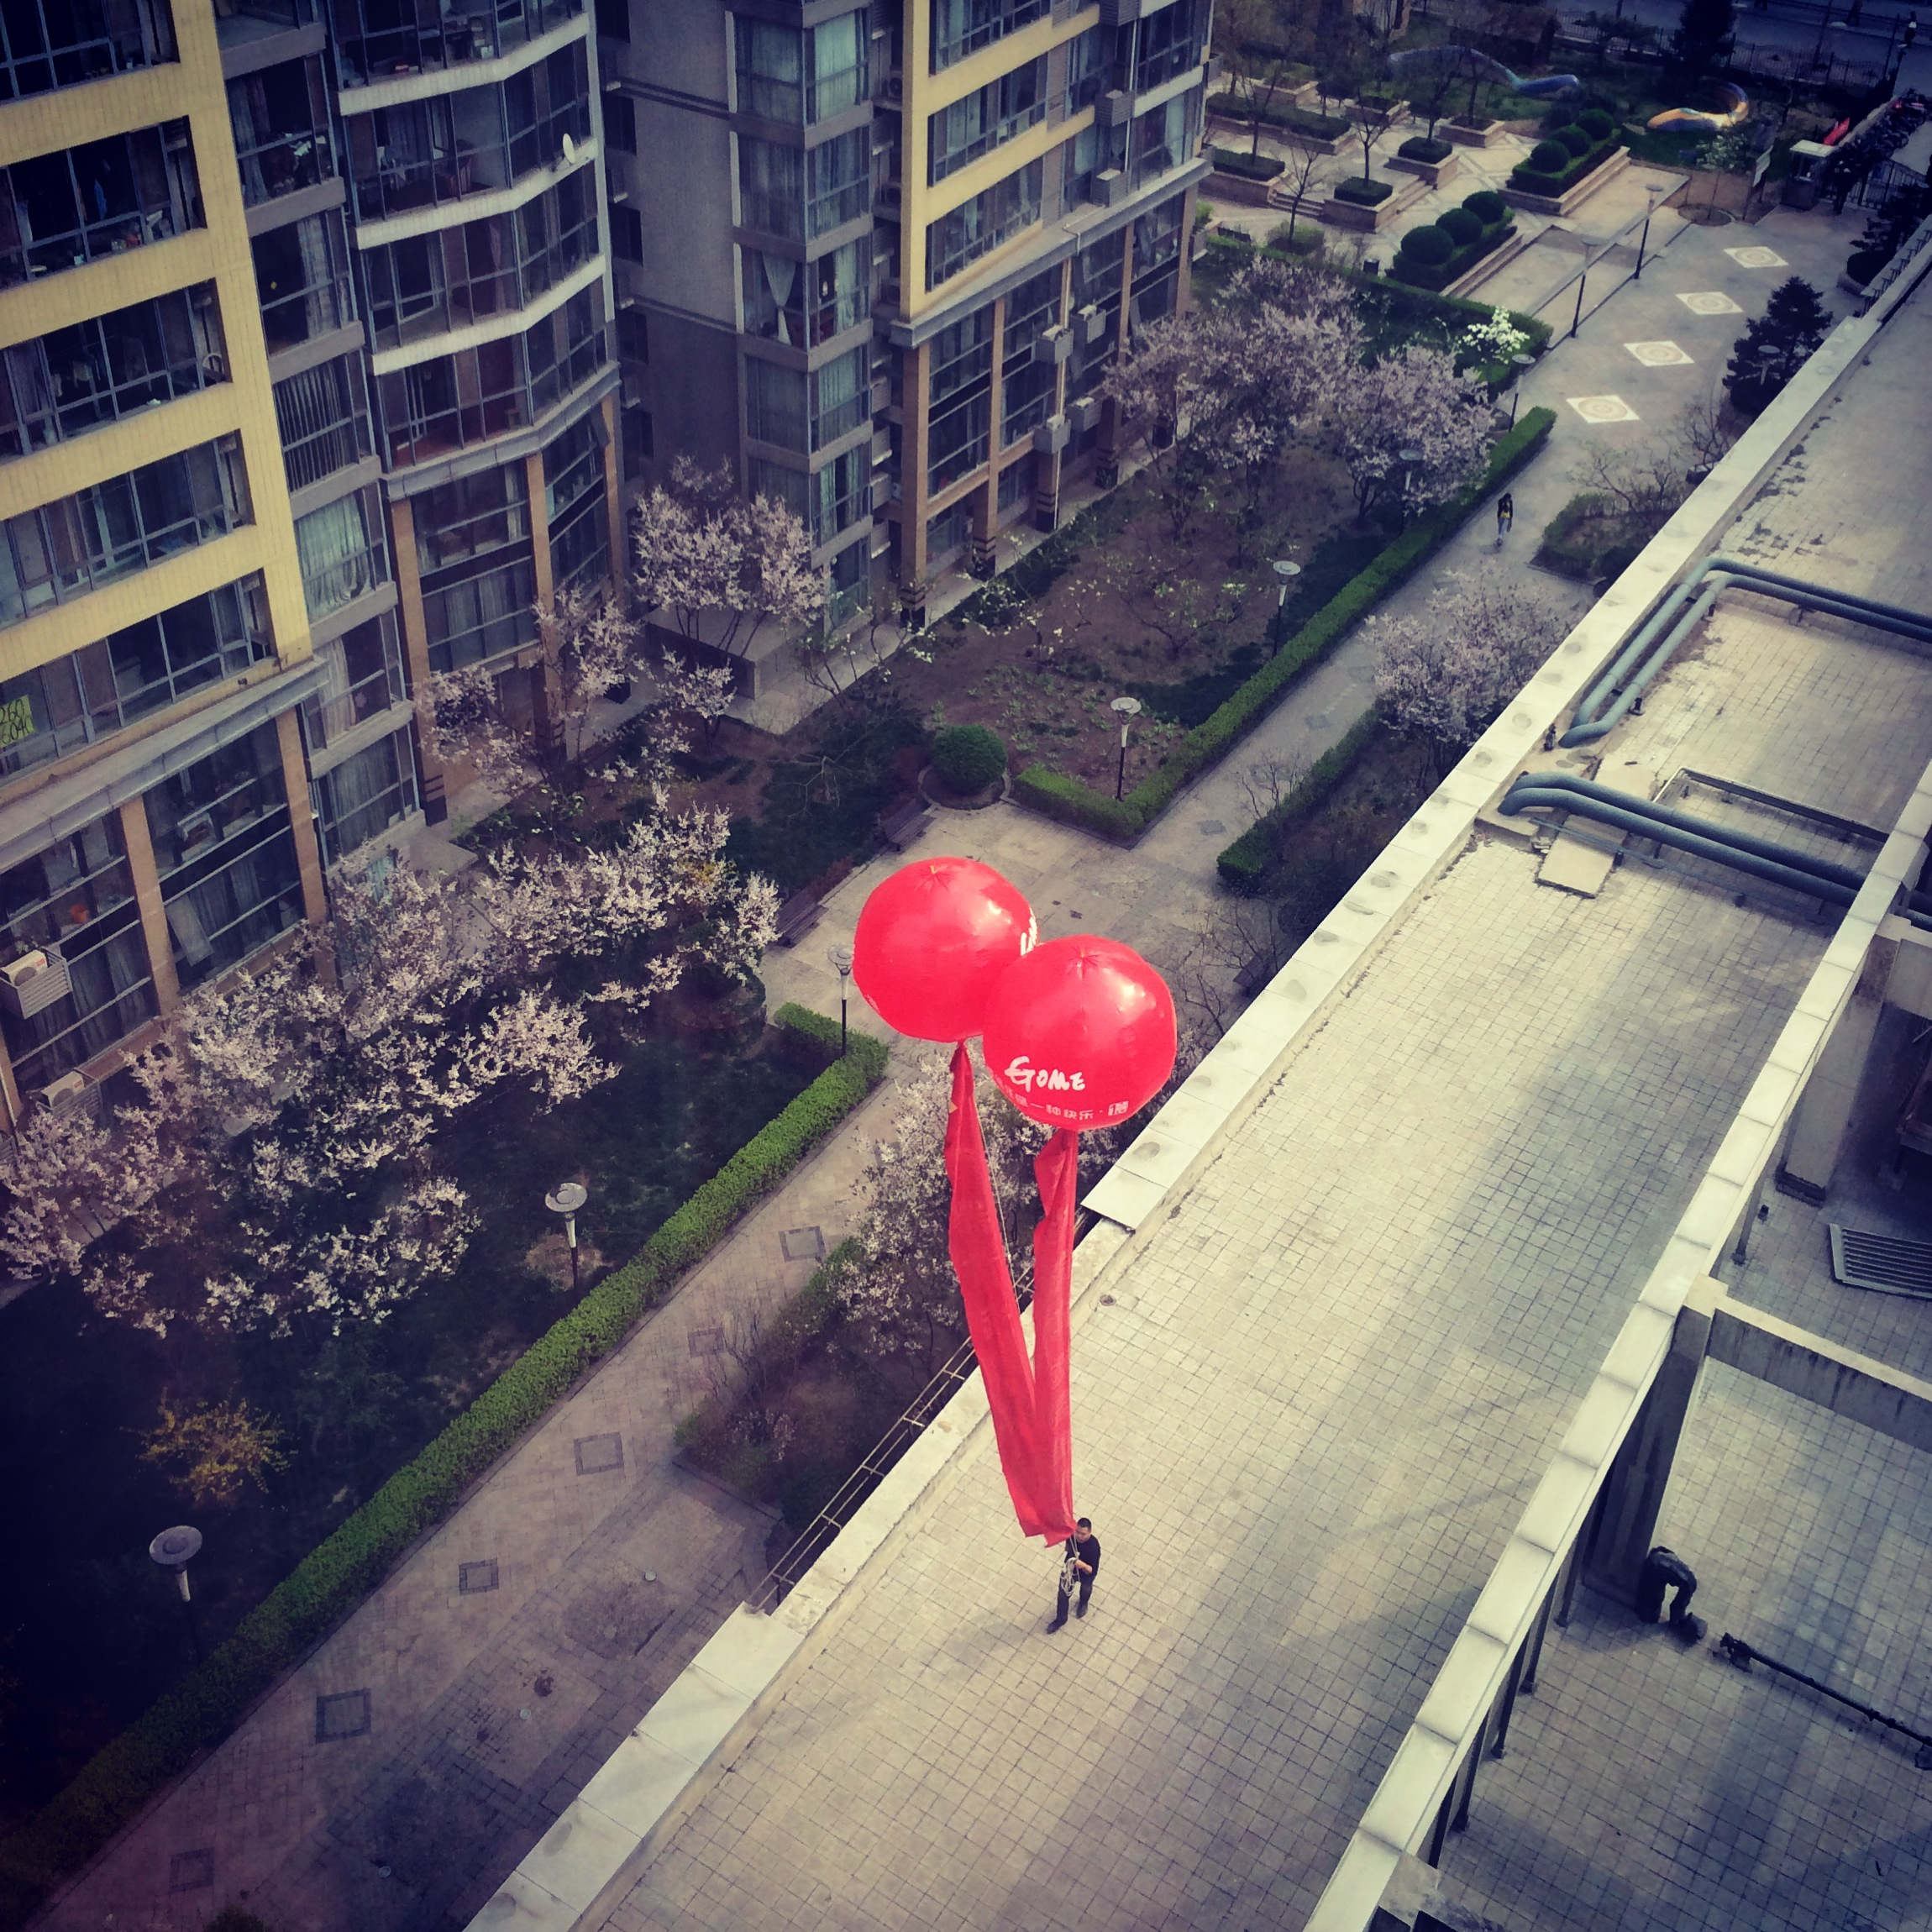 A man carrying giant balloons advertising a supermarket, Beijing.